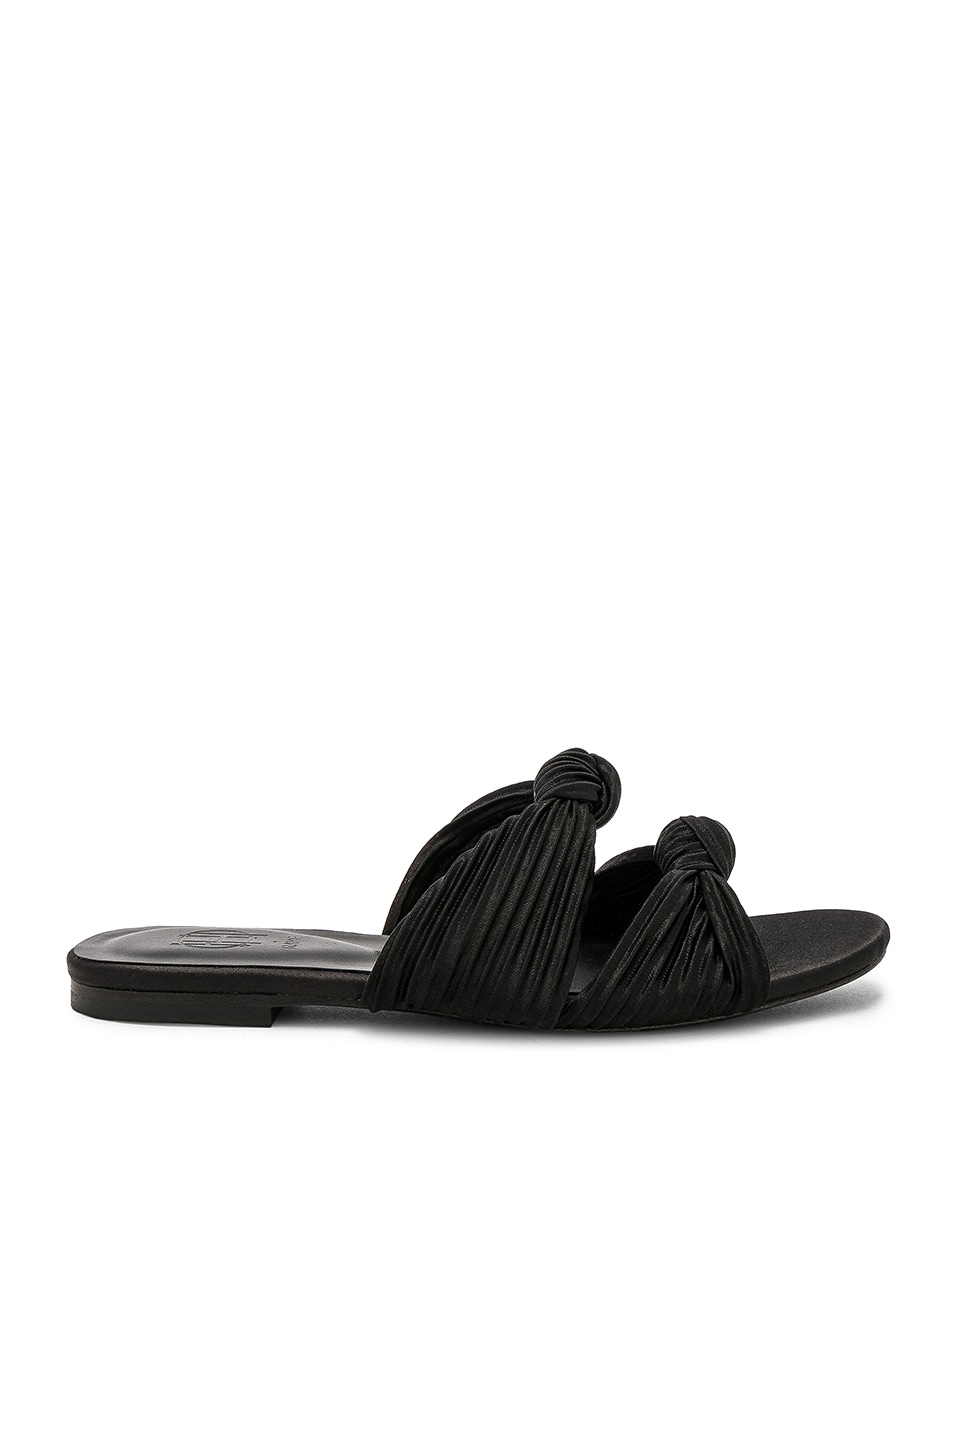 RAYE x House of Harlow 1960 Aspen Slide in Black